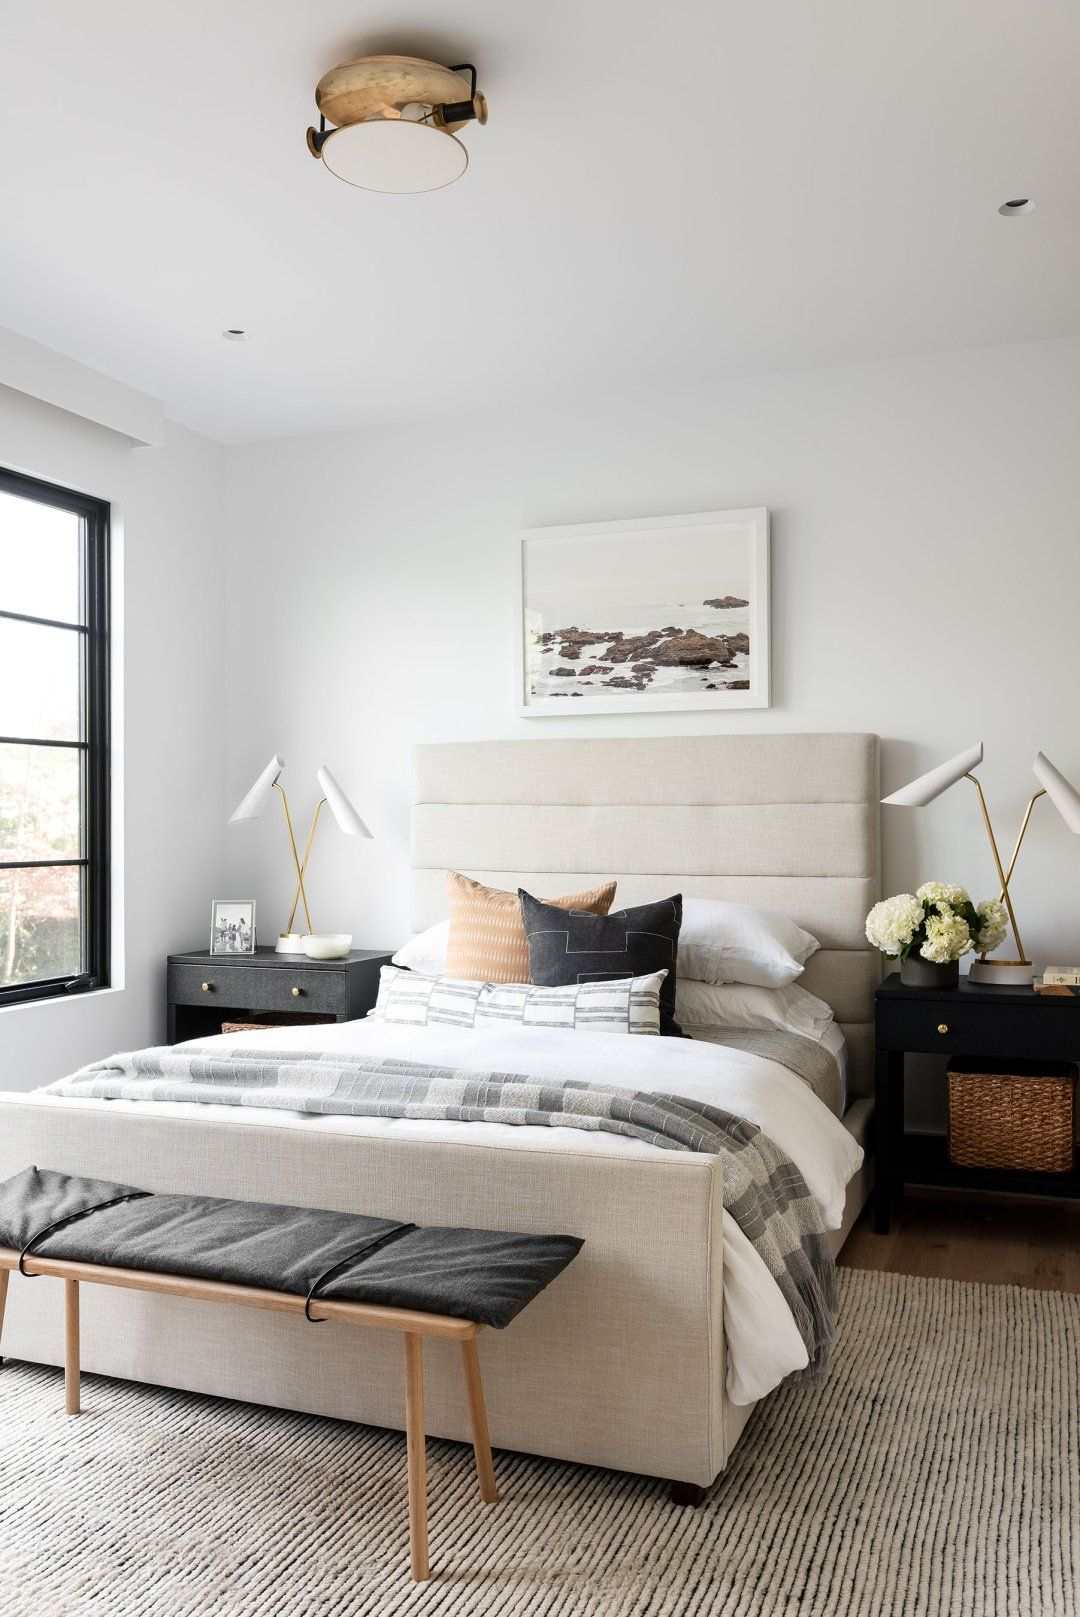 Simple & Layered Bonus & Guest Room in 2020 | Room, Guest ...